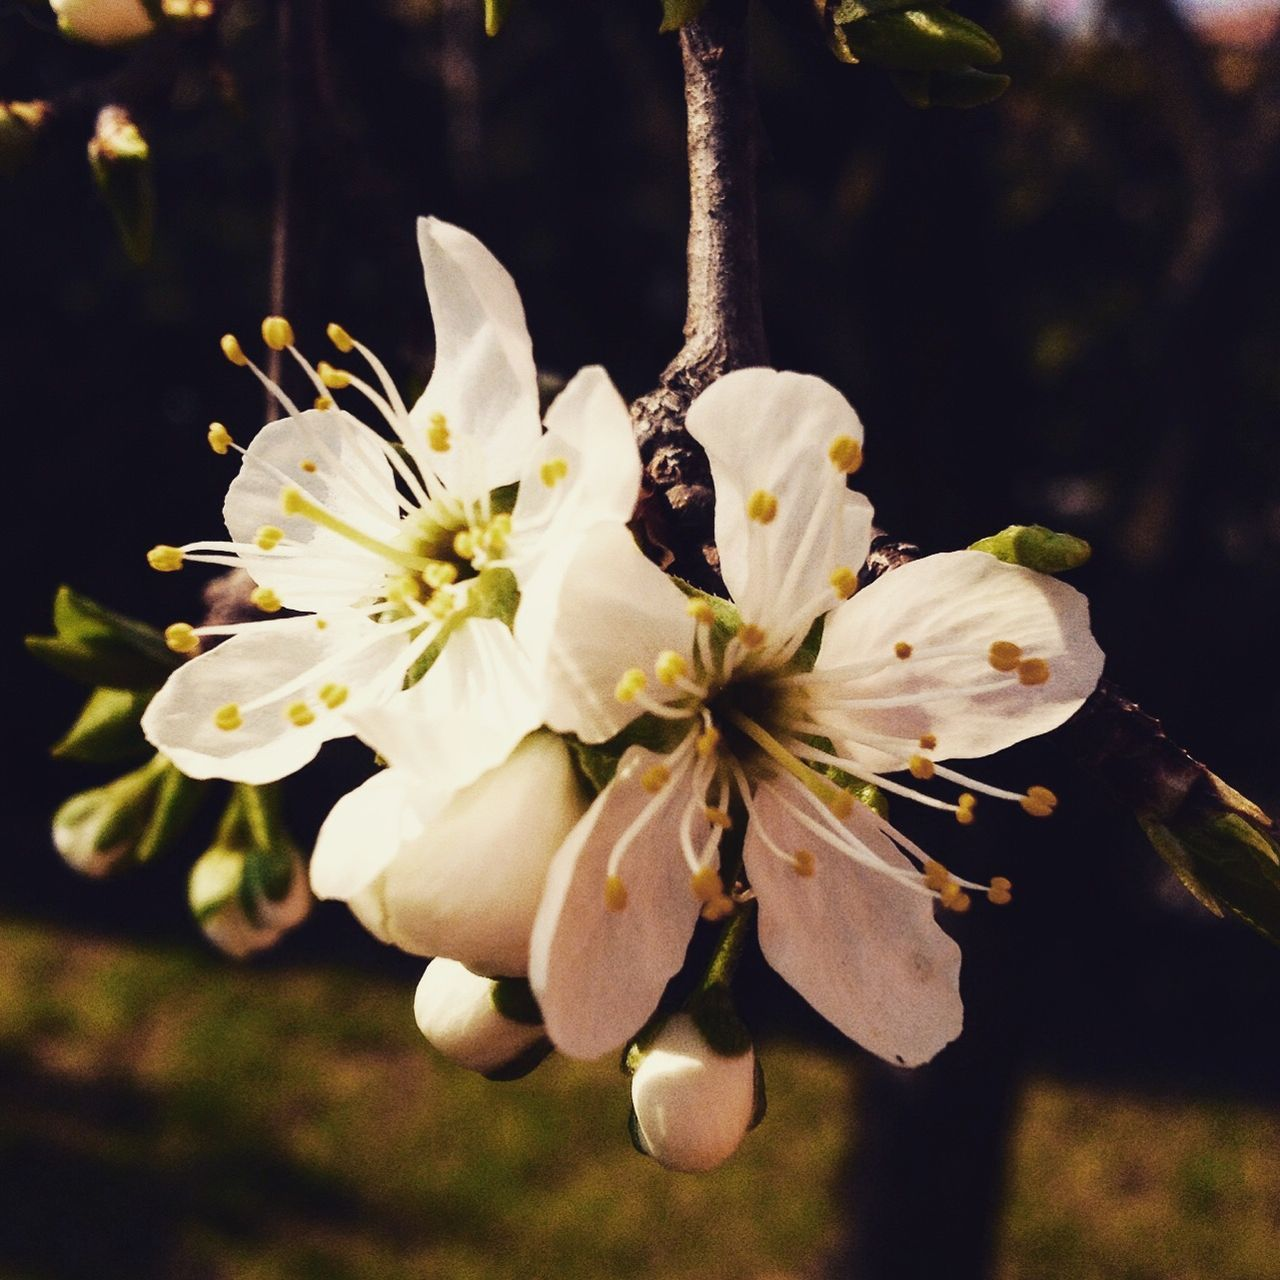 Beauty In Nature Close-up EyeEm Gallery EyeEm Nature Lover Flower Freshness Nature Plum Tree Spring Spring Flowers Springtime White Color